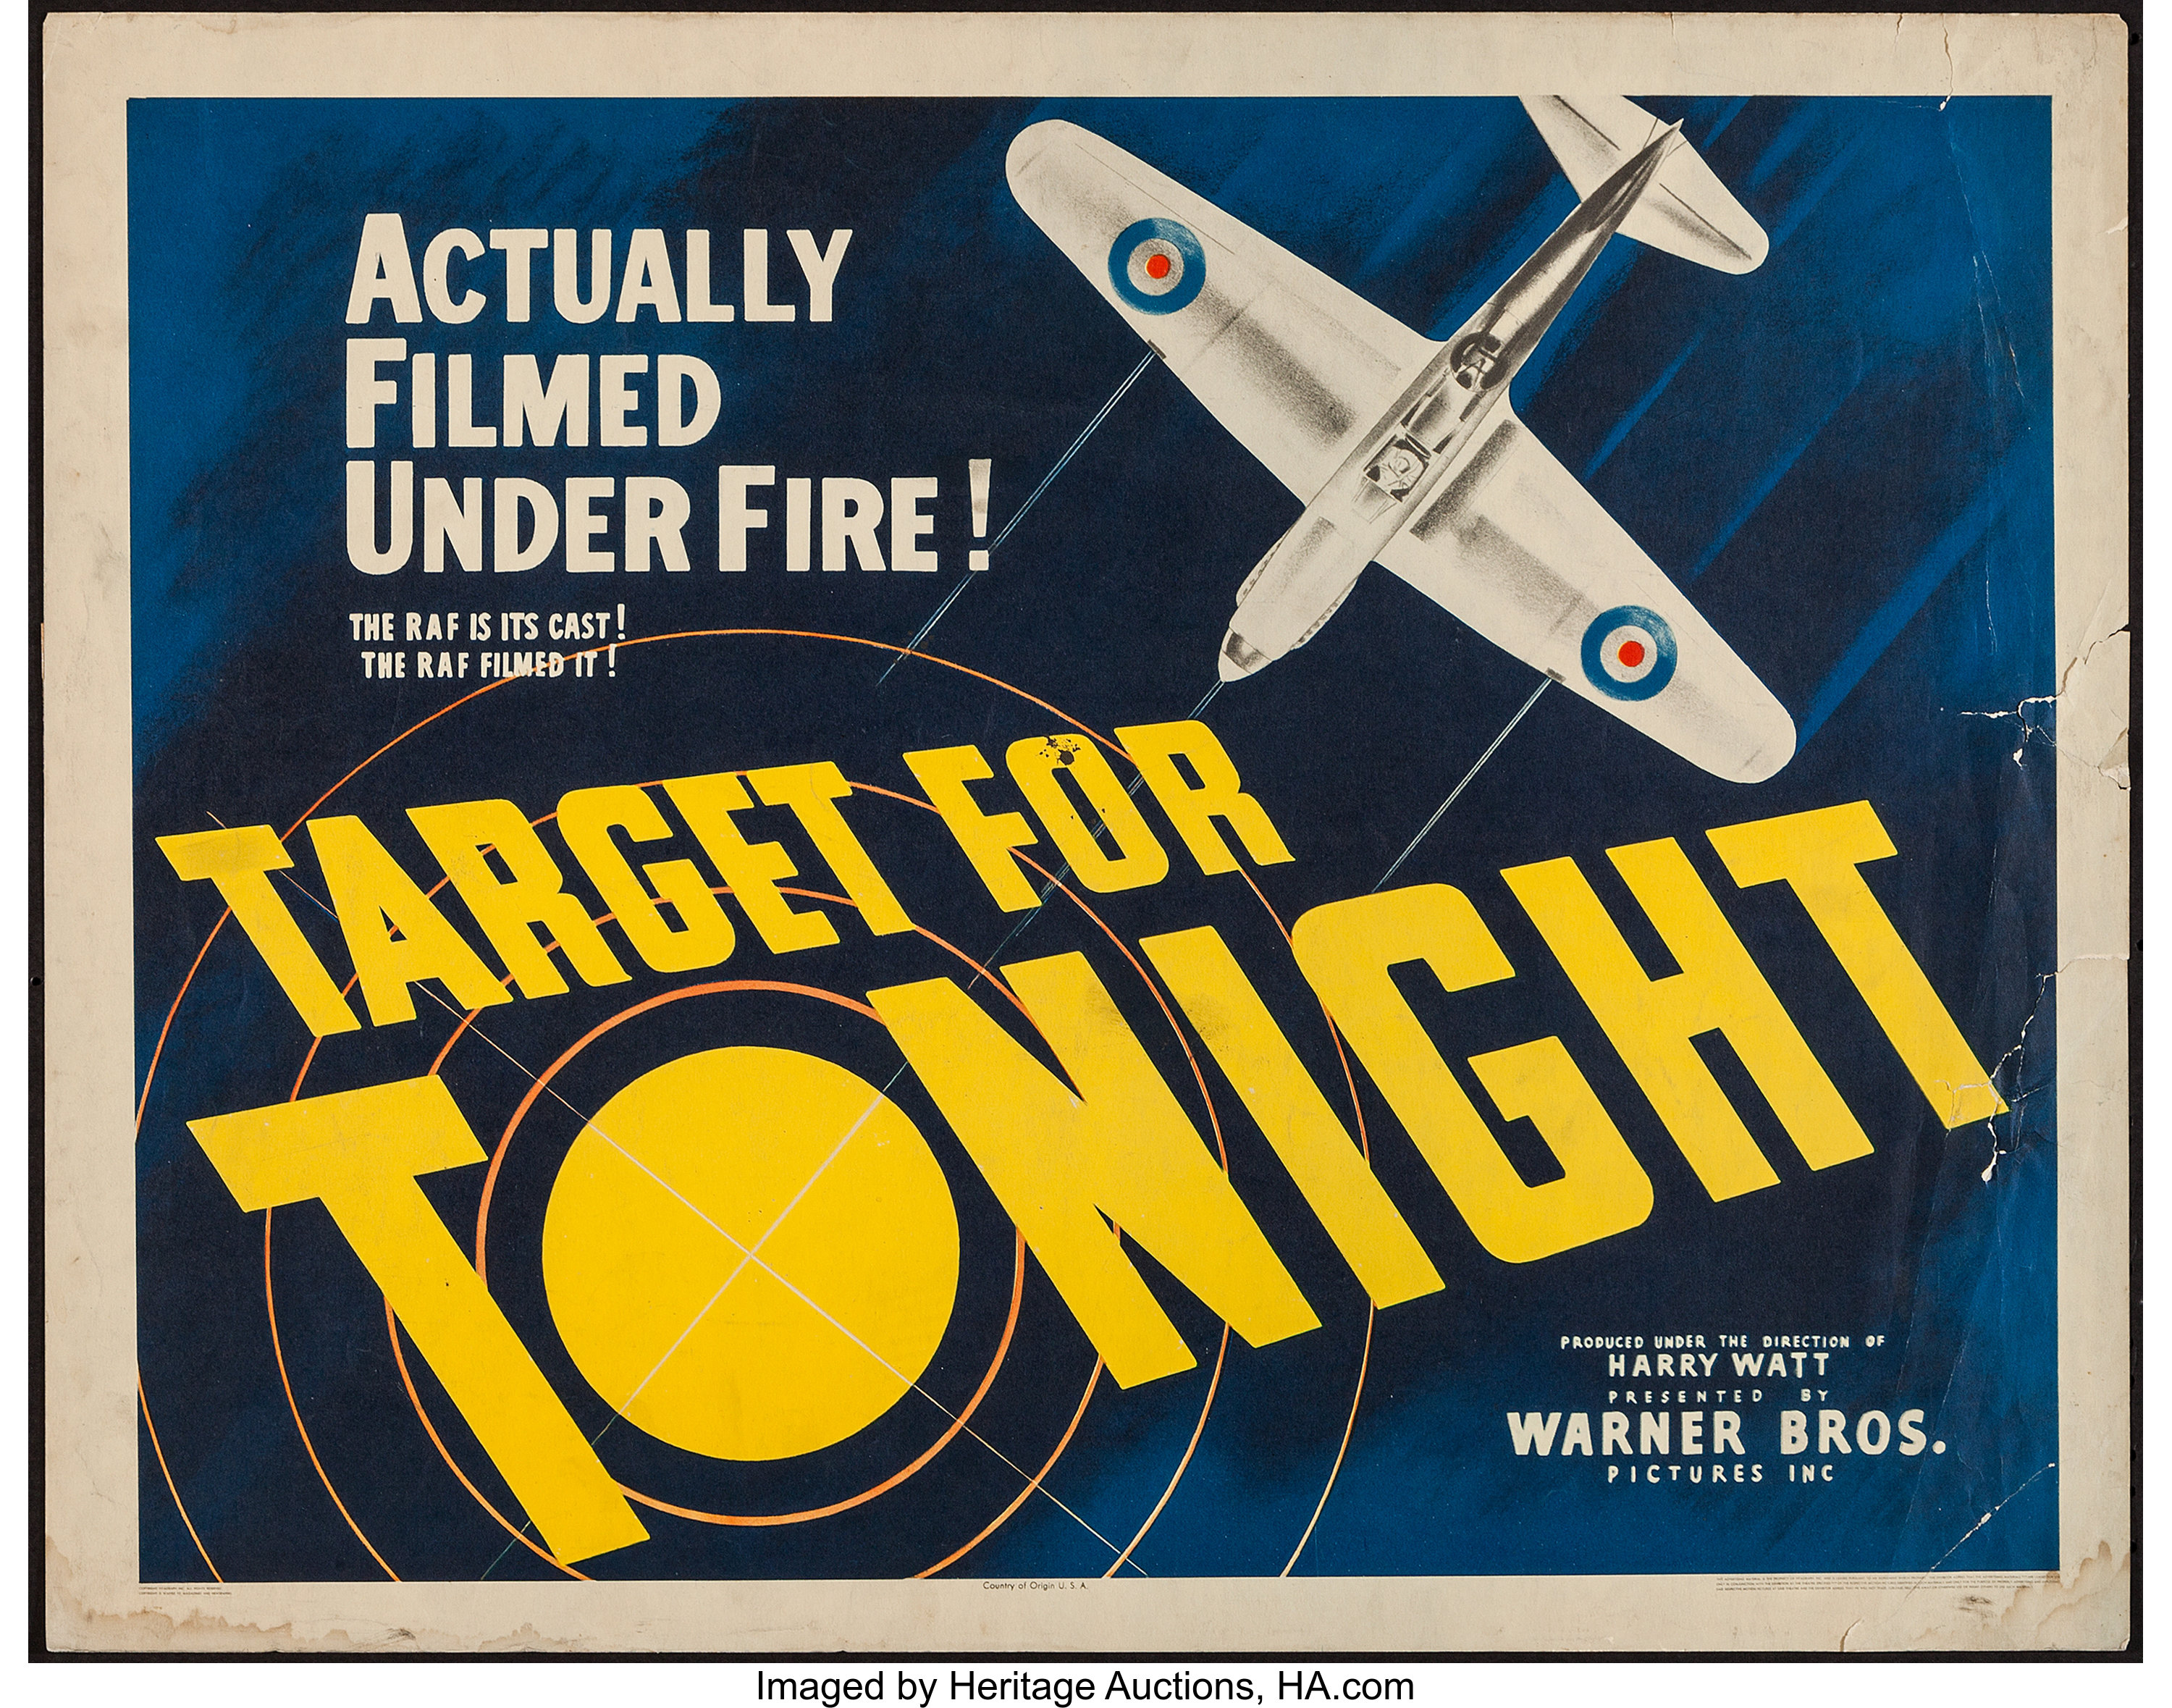 Target for Tonight (1941)